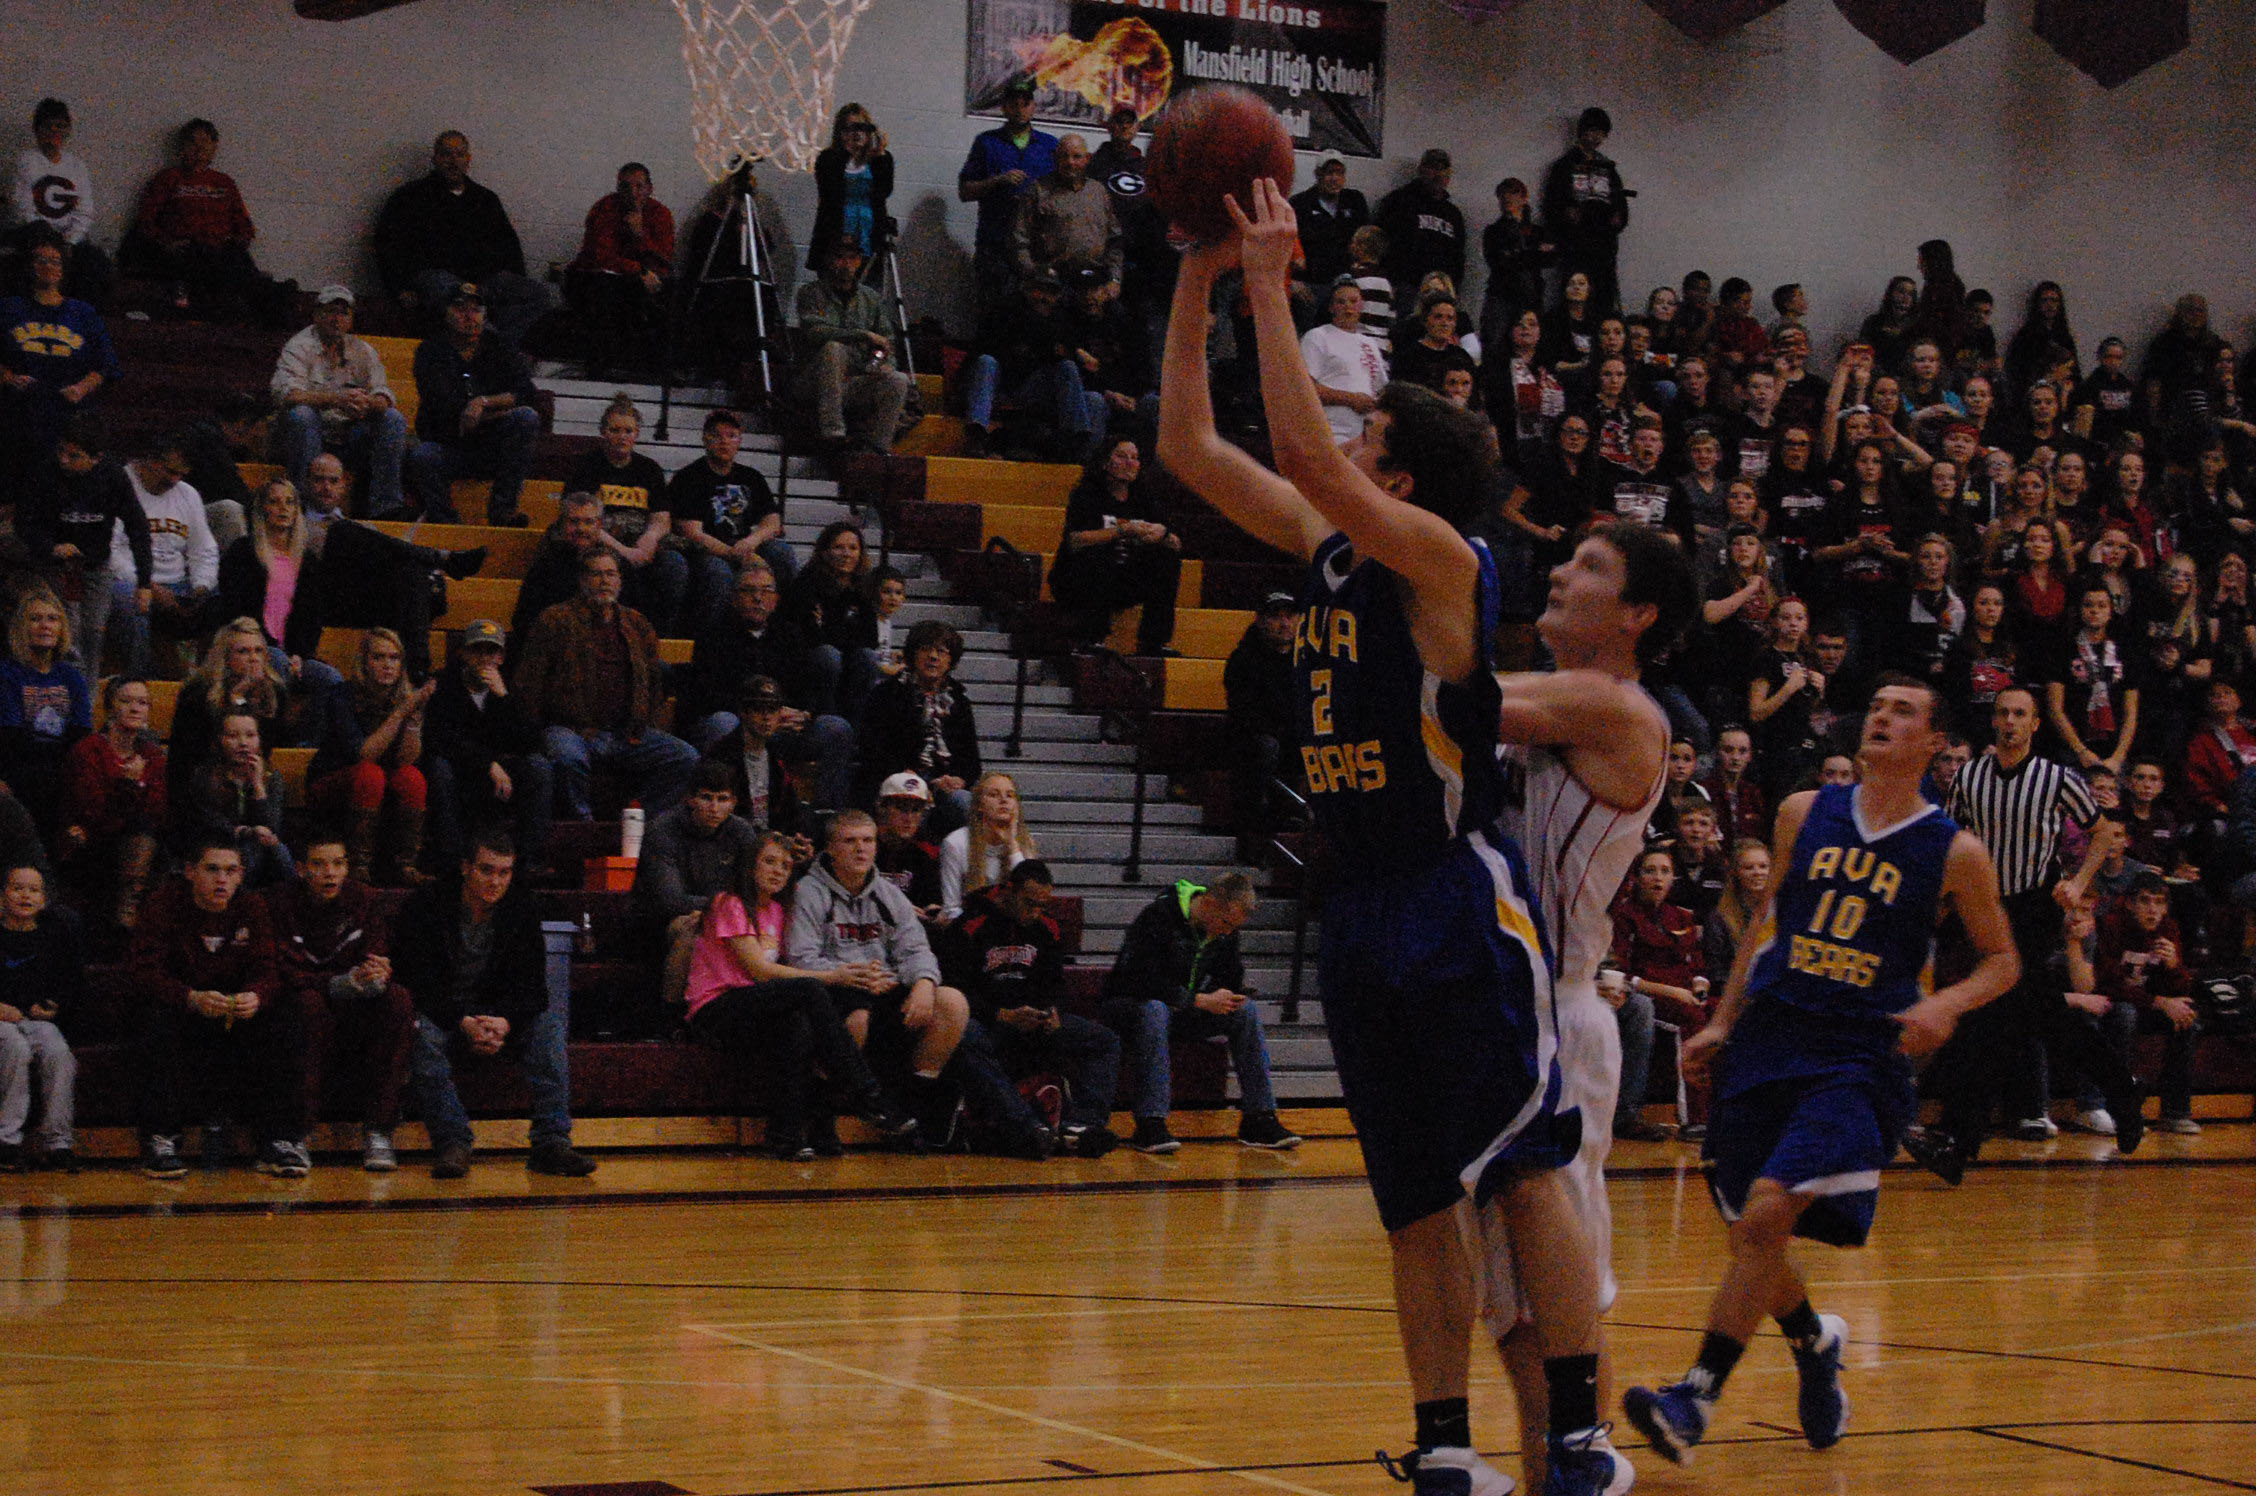 Seth Dobbs steps into the lane for an easy shot against Gainesville in the championship game of the Mansfield Tournament last Saturday night.